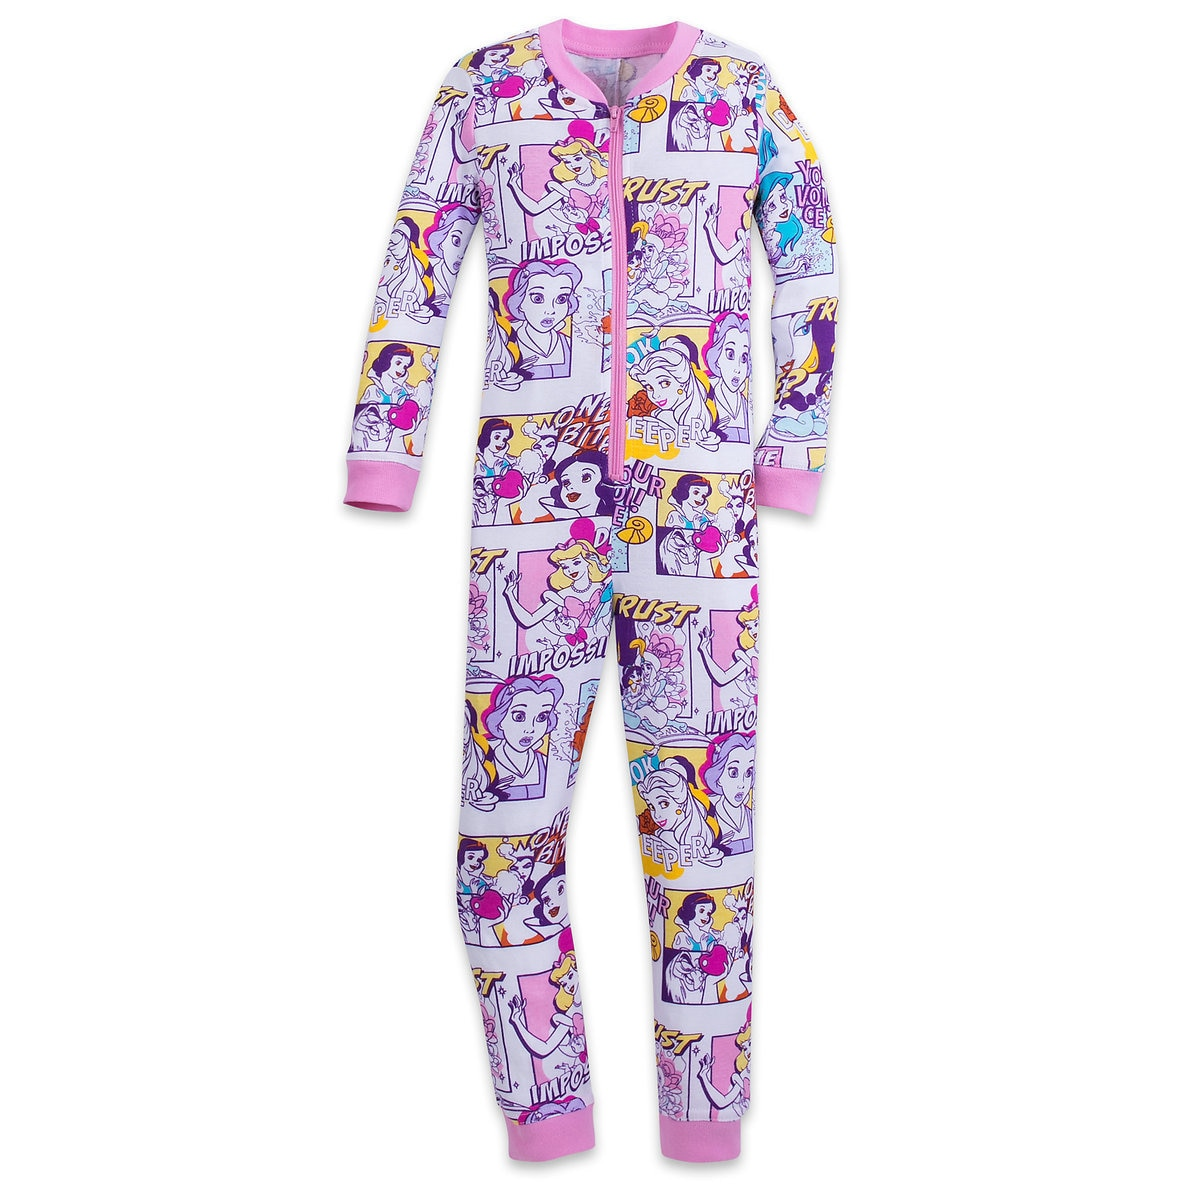 Disney Princess Stretchie Sleeper for Kids